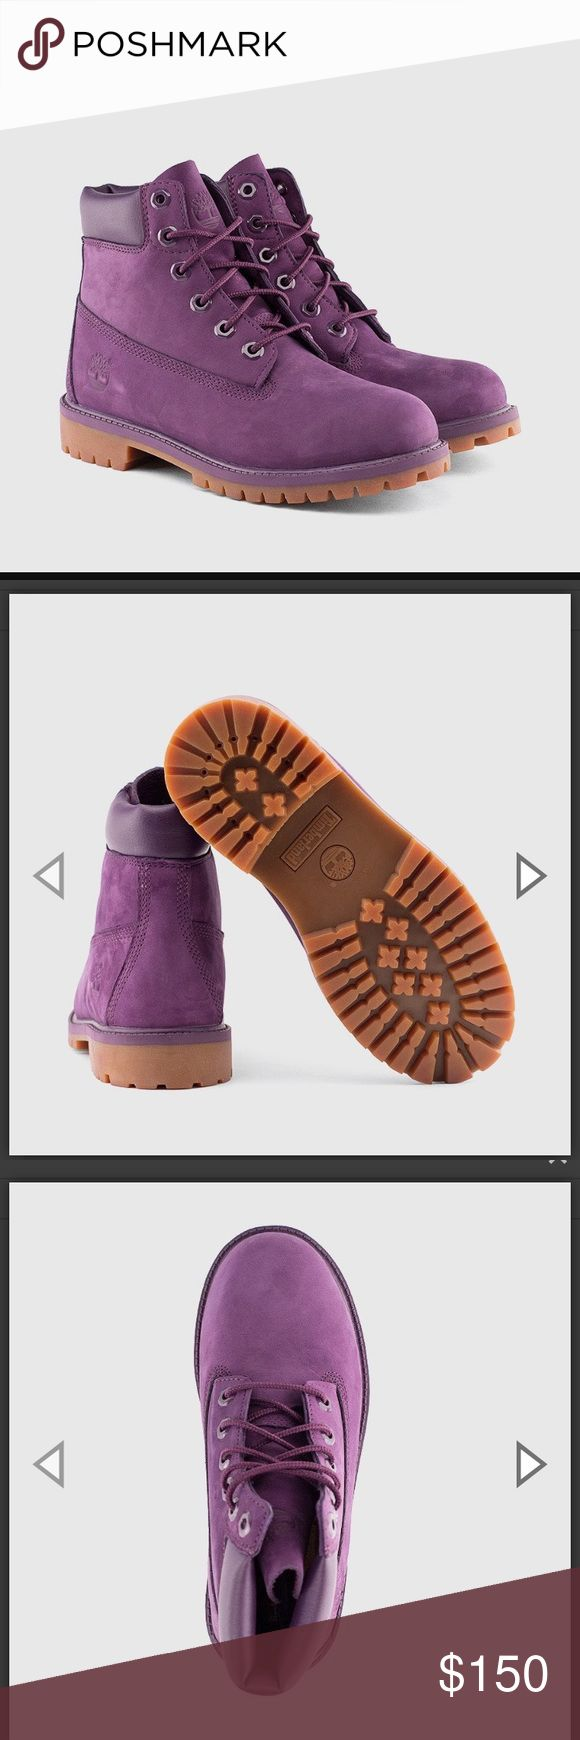 Timberland waterproof BootLimited Release, Boots, Timberland waterproof Boot 6 Inch Premium Purple A13YV Limited Release, Boots, Sz Timberland Shoes Ankle Boots & Booties